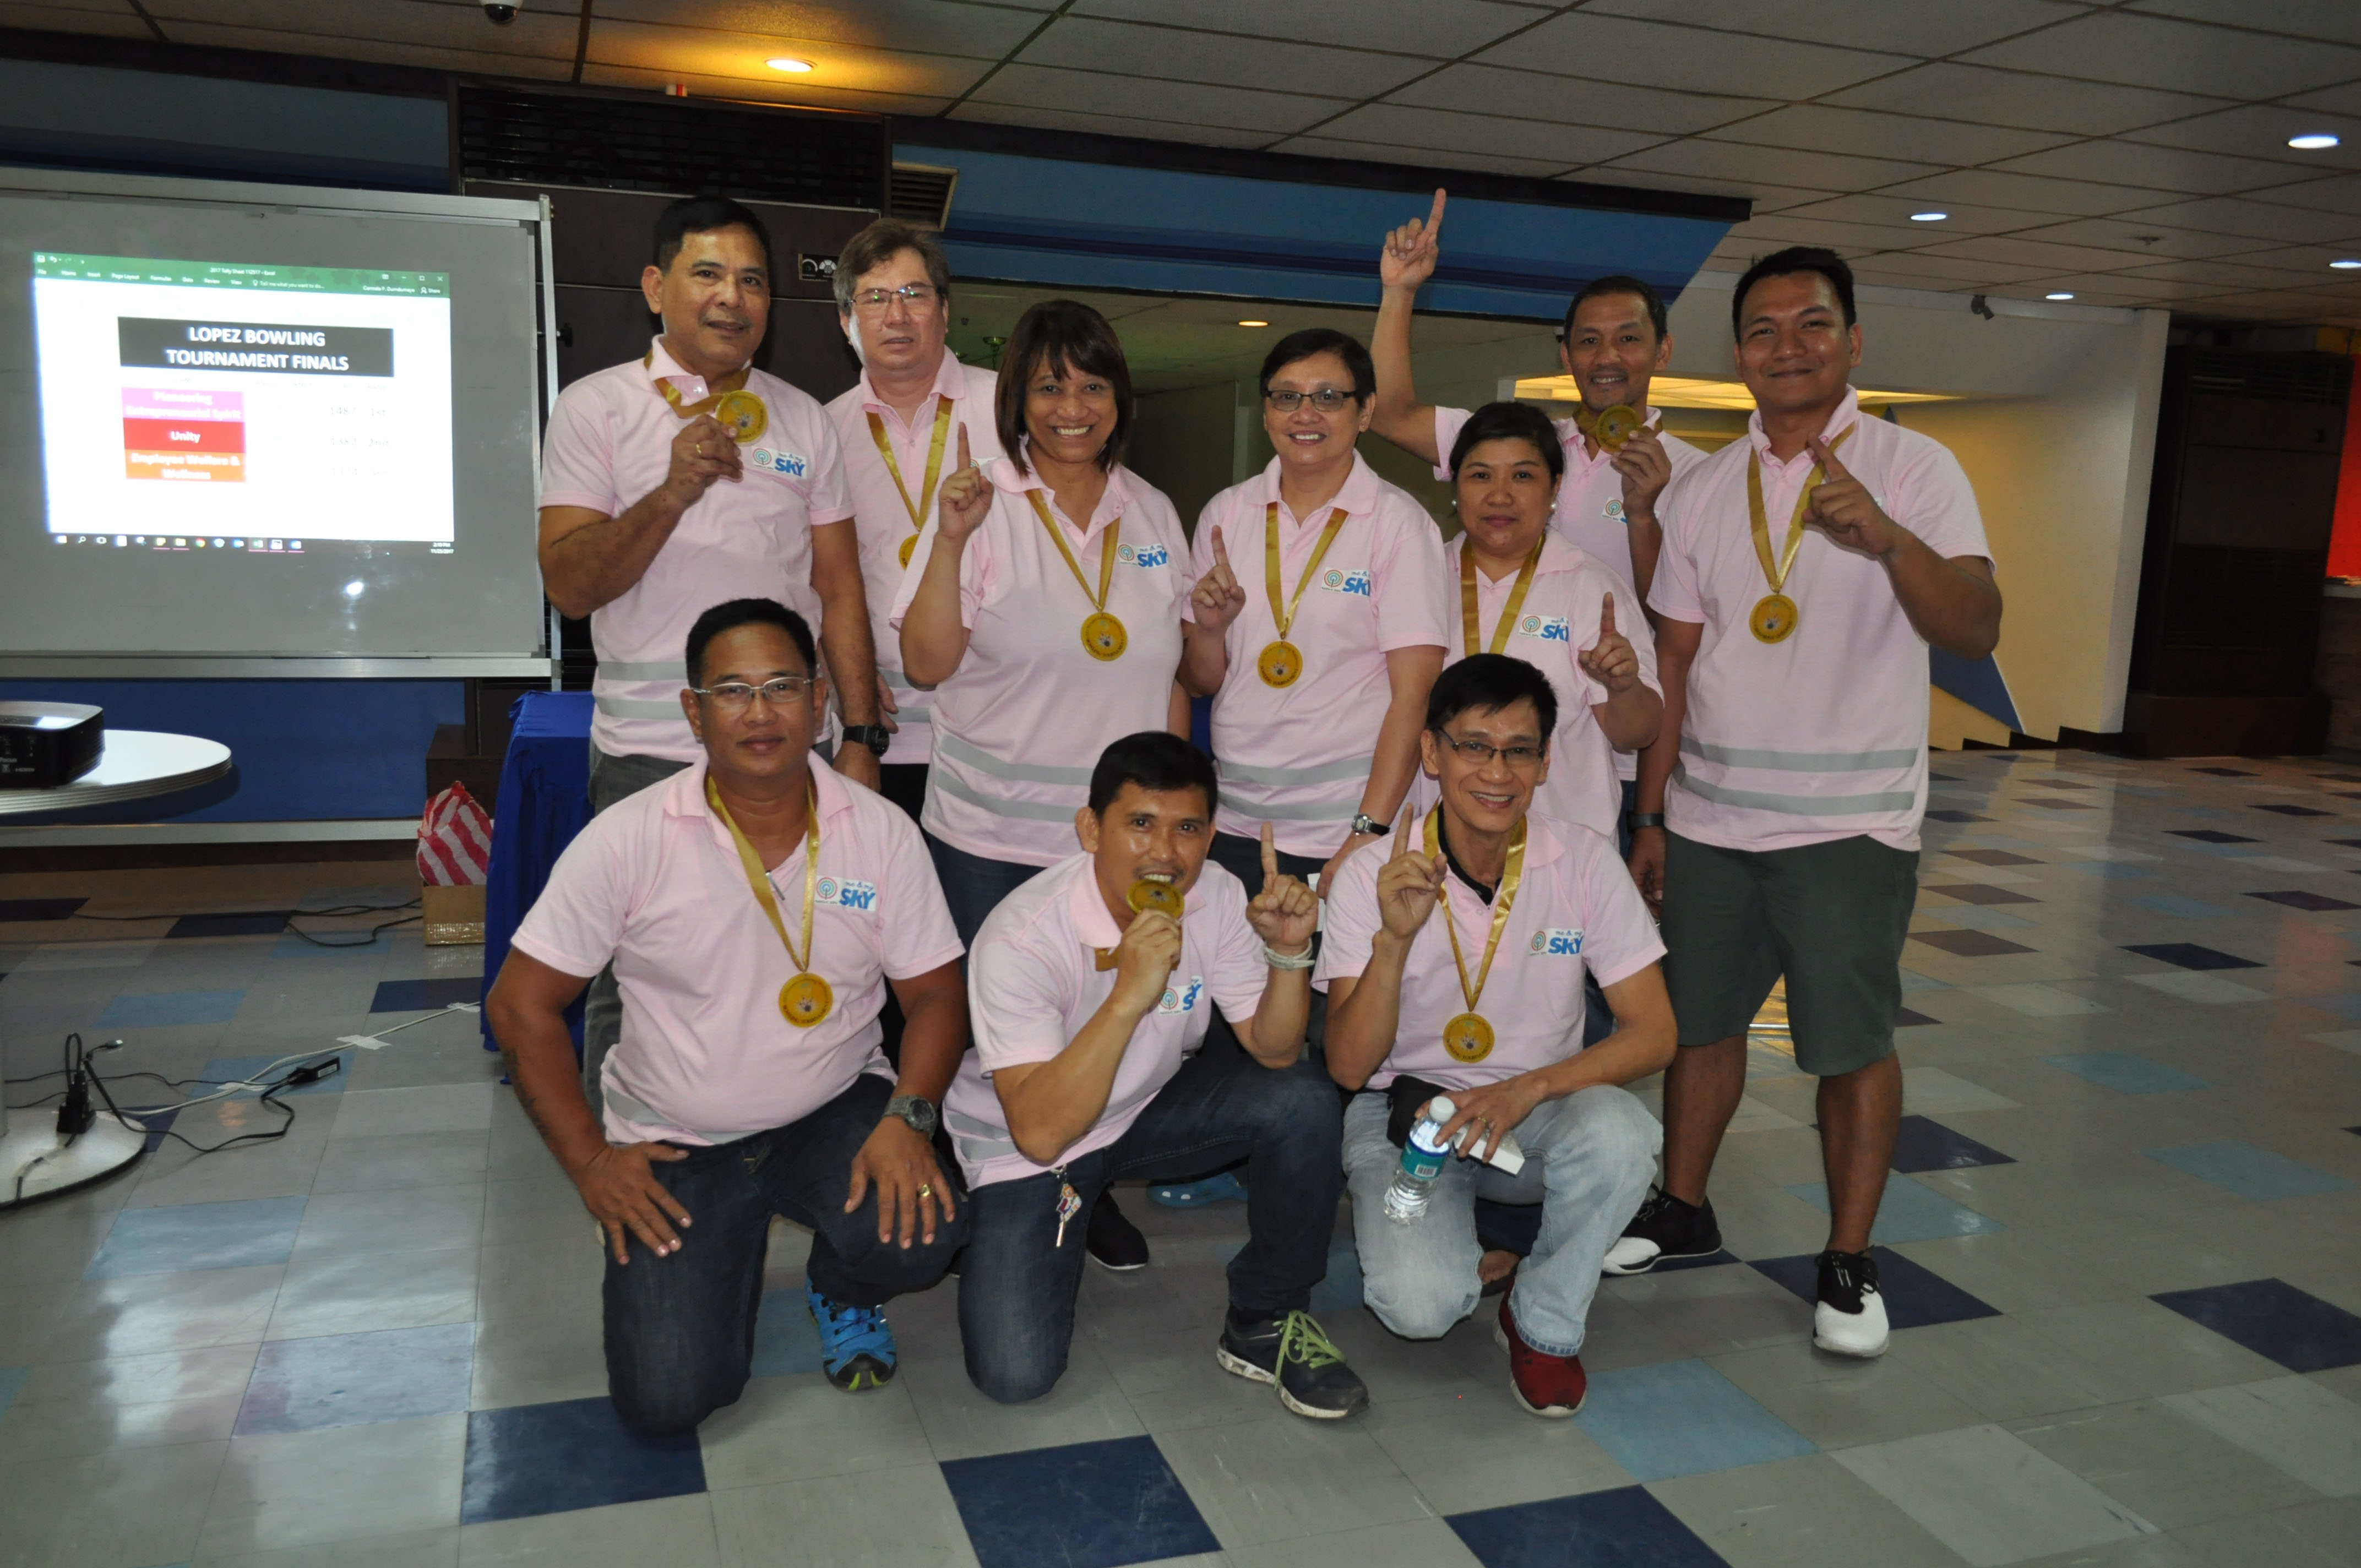 Clockwise from top: Overall champion Team Pioneering Entrepreneurial Spirit; Second placer Team Unity; and third placer Team Employee Welfare and Wellness